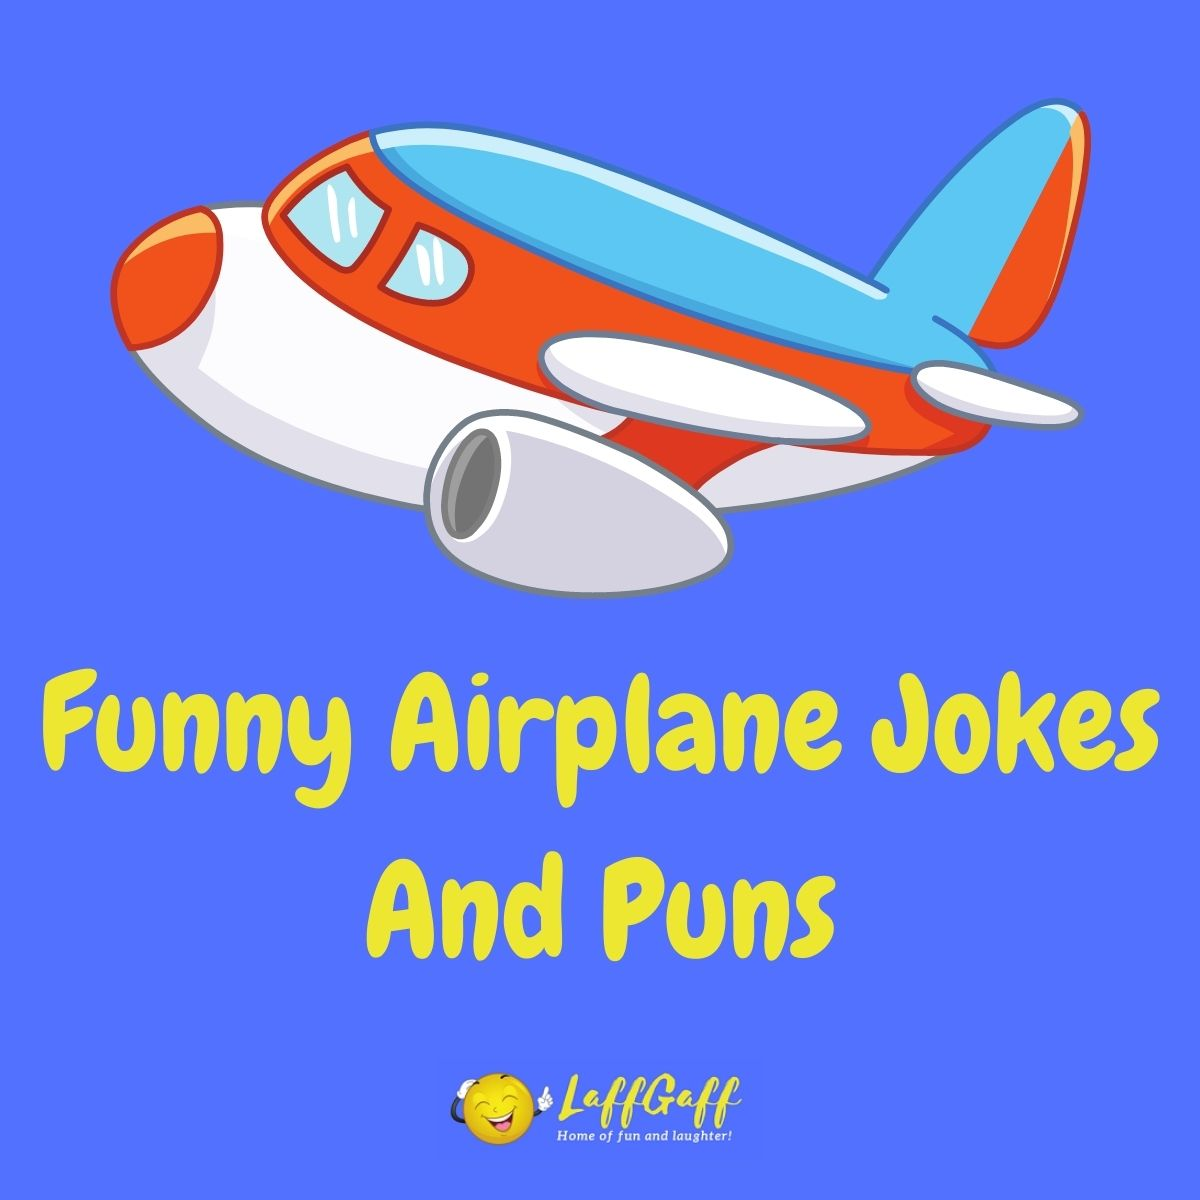 Featured image for a page of funny airplane jokes and puns.